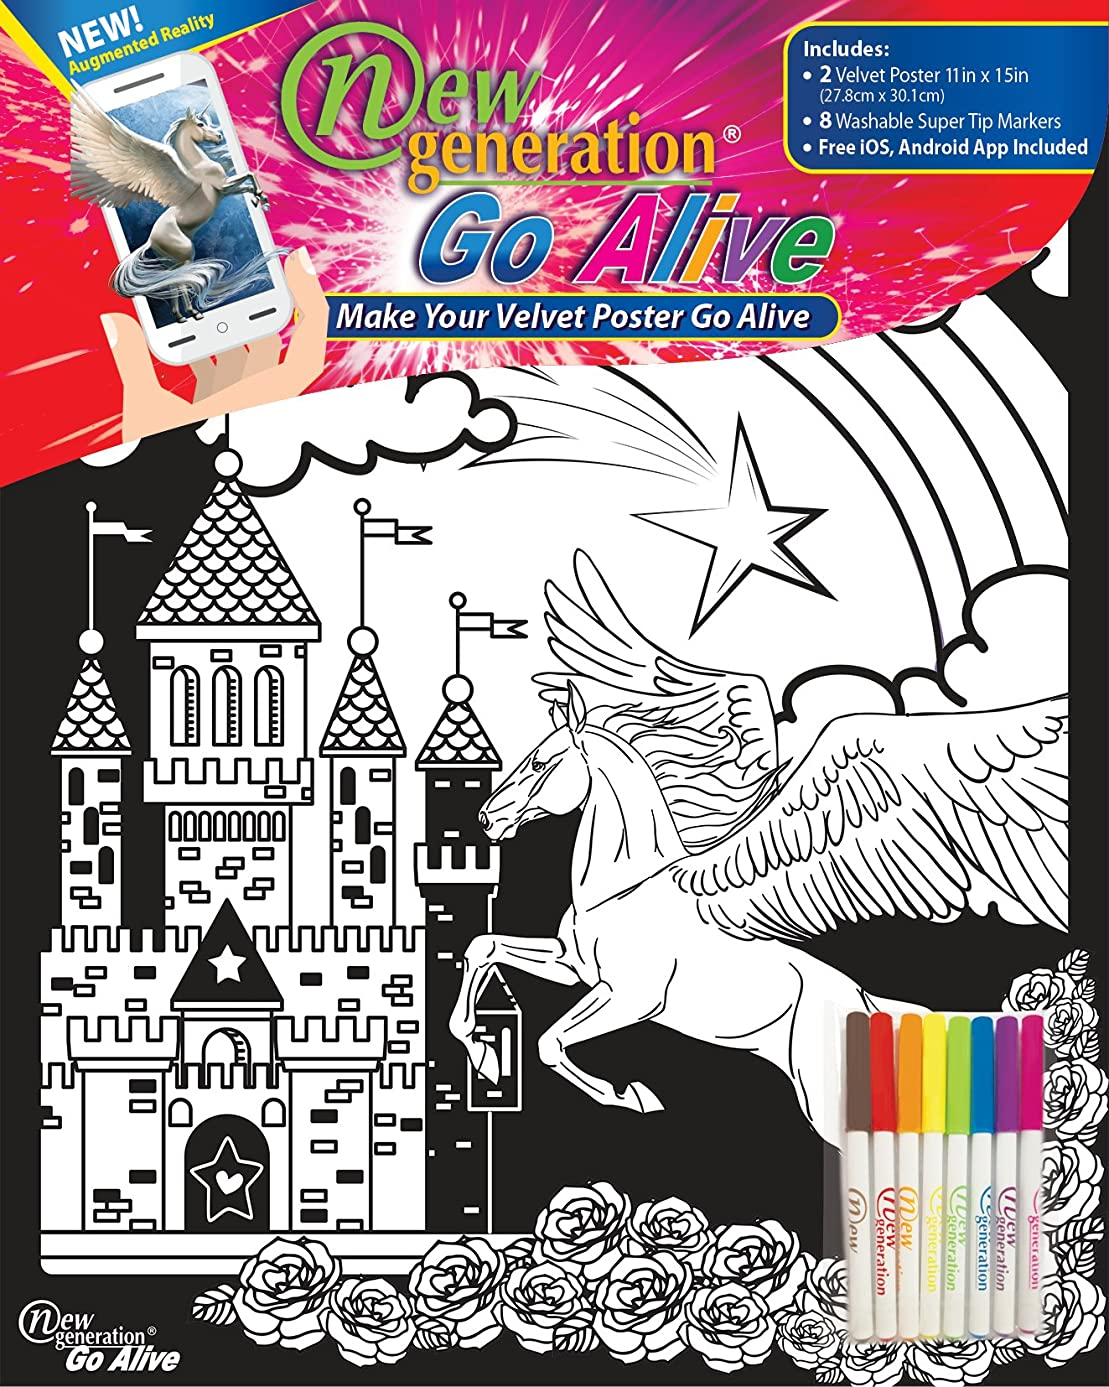 New Generation GO Alive - Unicorn Coloring Velvet Art Posters 2-Pack Set of 11x15 Inch Color in Posters | 8 Super Tip Washable Markers Included | Unicorn Value Pack Fuzzy Posters Great Gifting idea